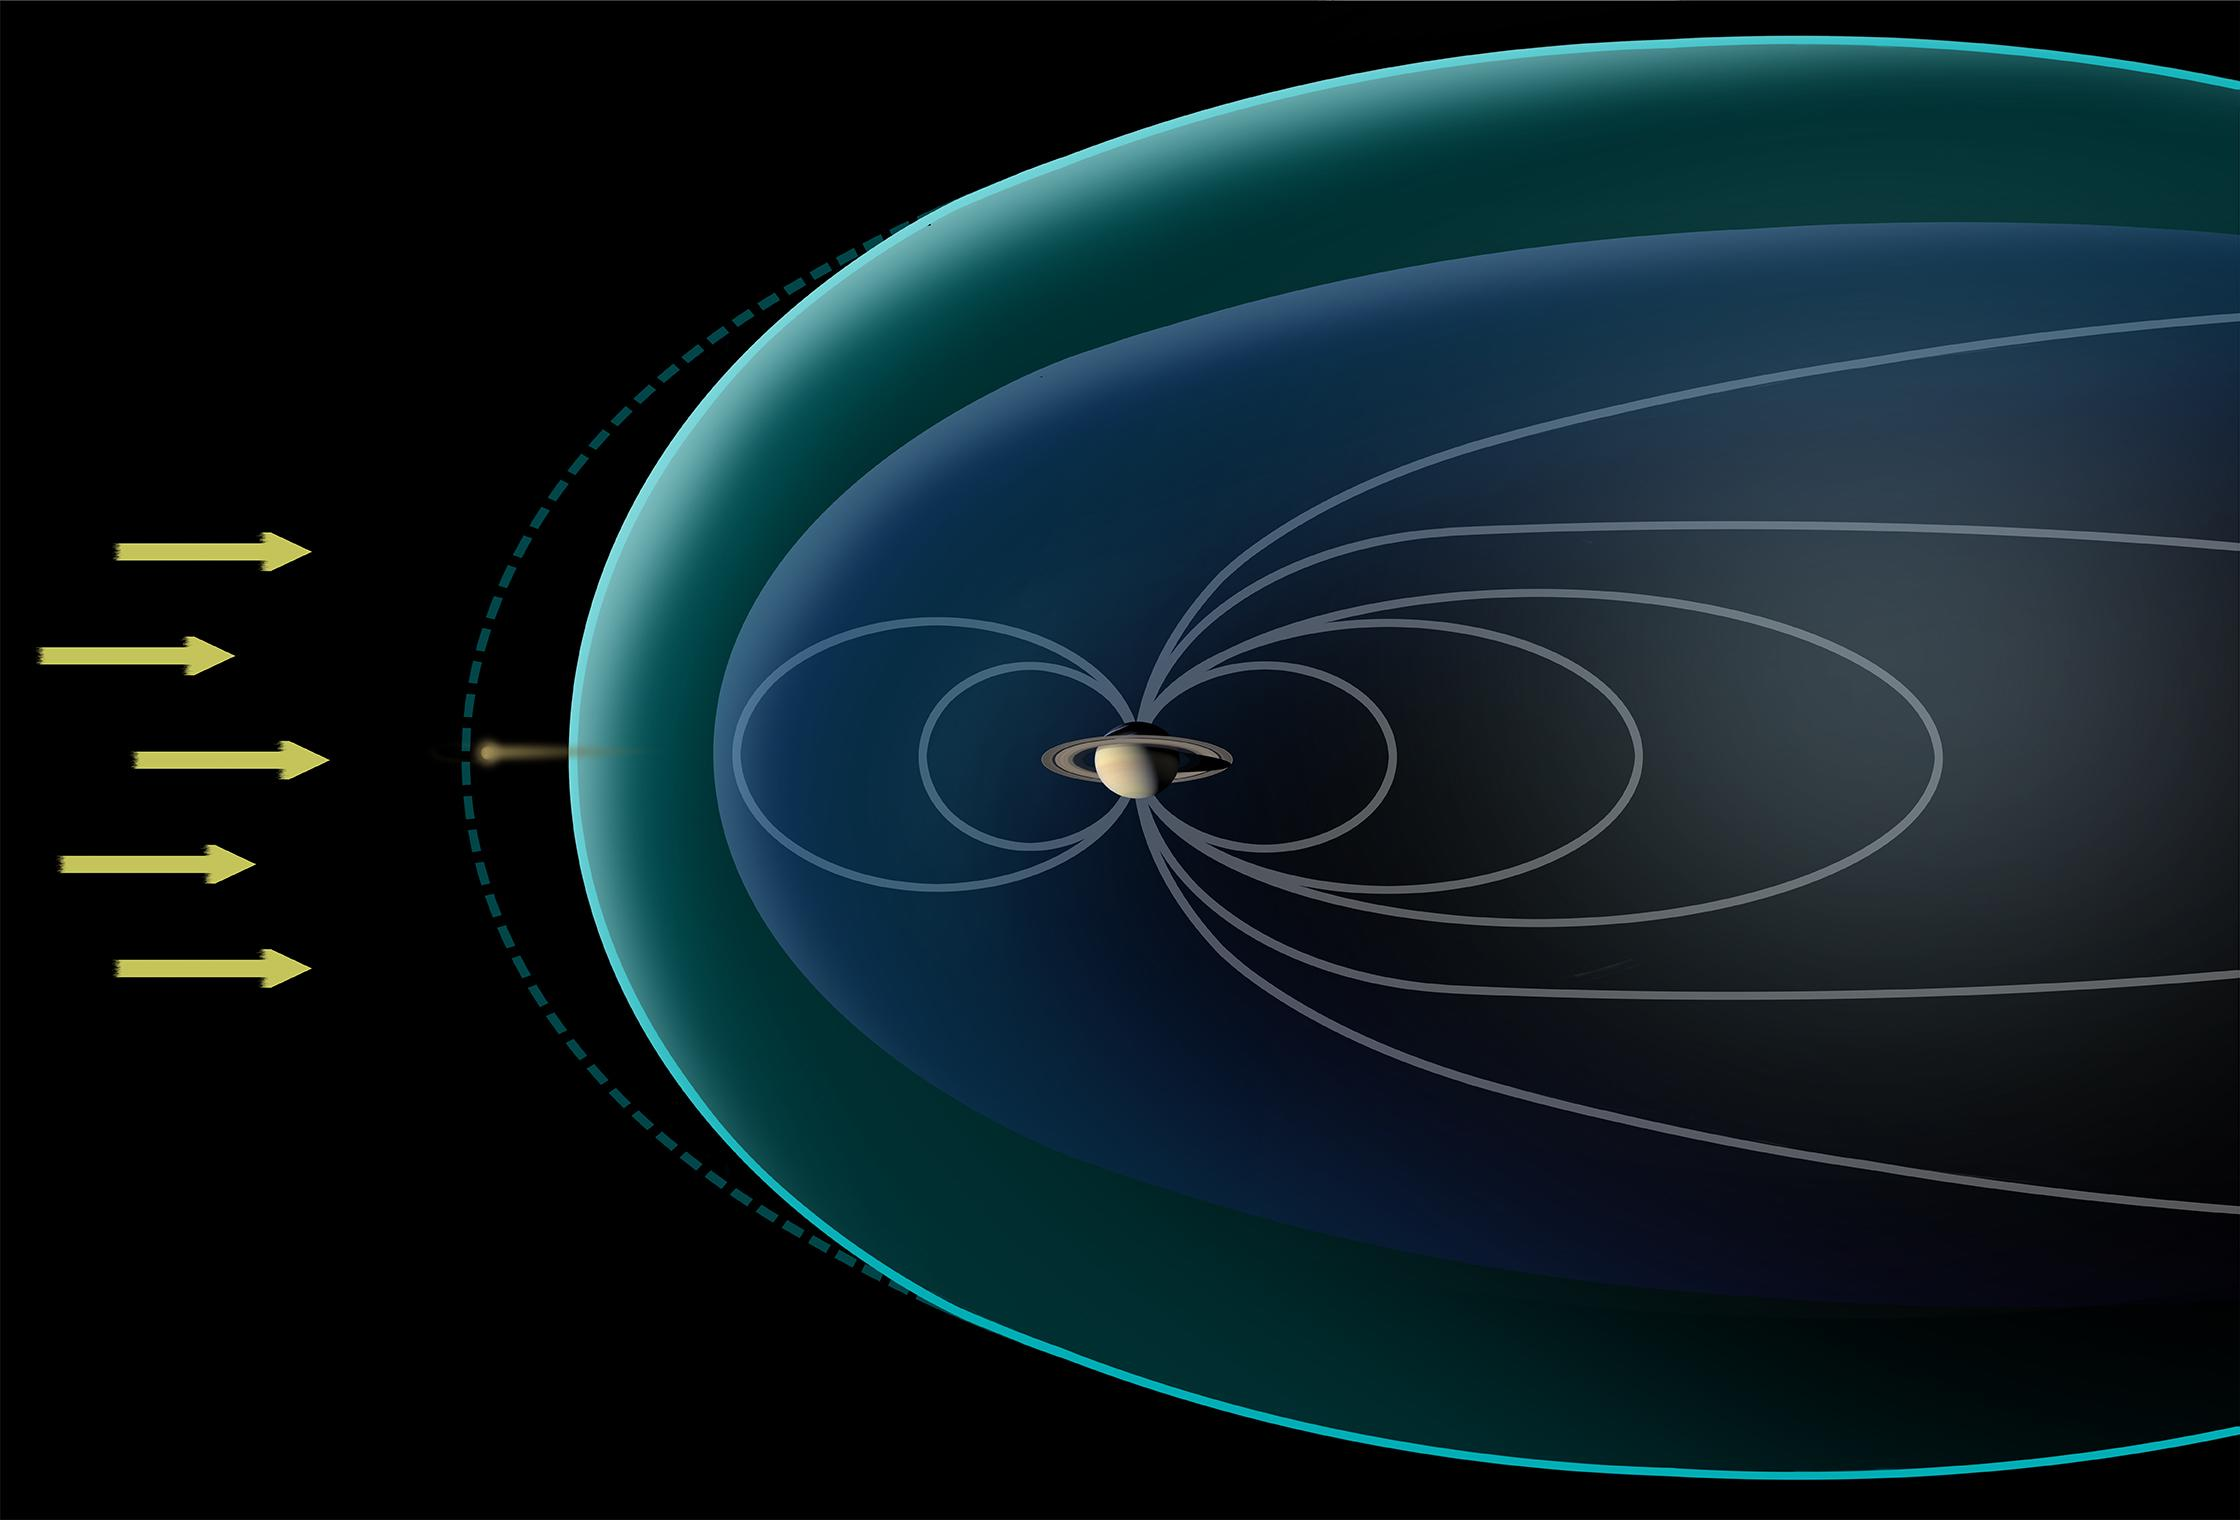 This diagram depicts conditions observed by NASA's Cassini spacecraft during a flyby in Dec. 2013, when Saturn's magnetosphere was highly compressed